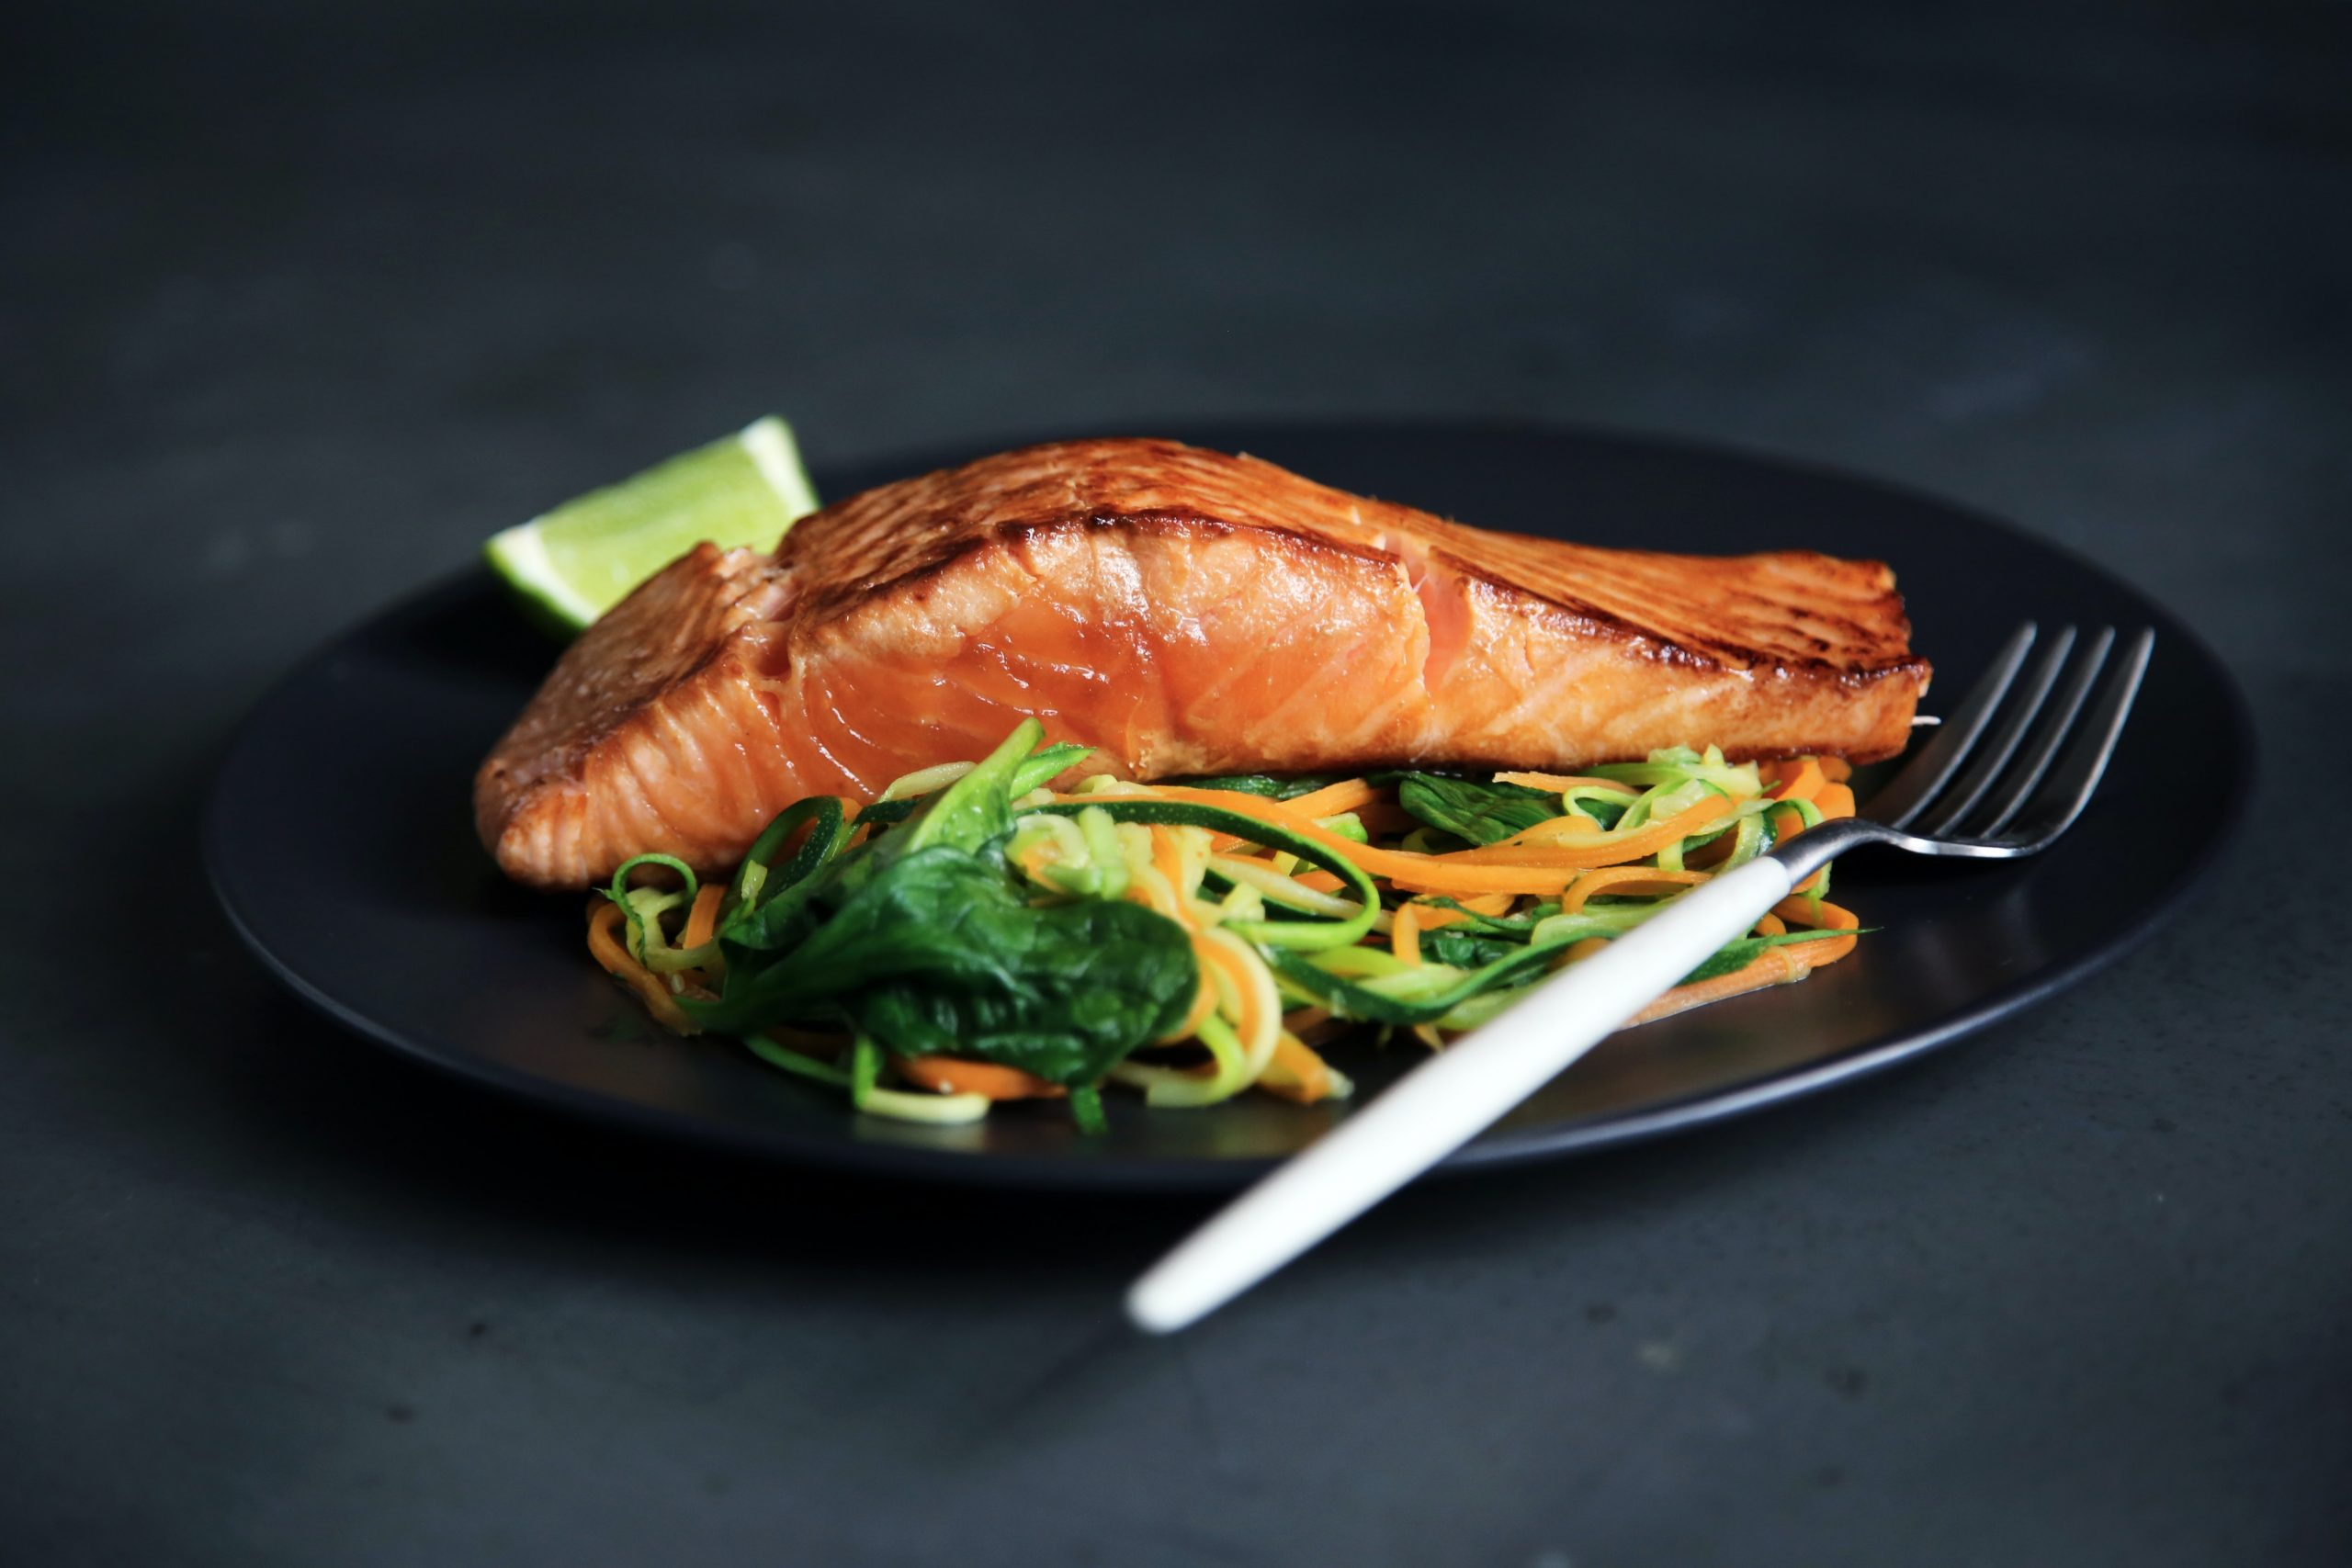 Salmon is a food item that pregnant women should eat more of